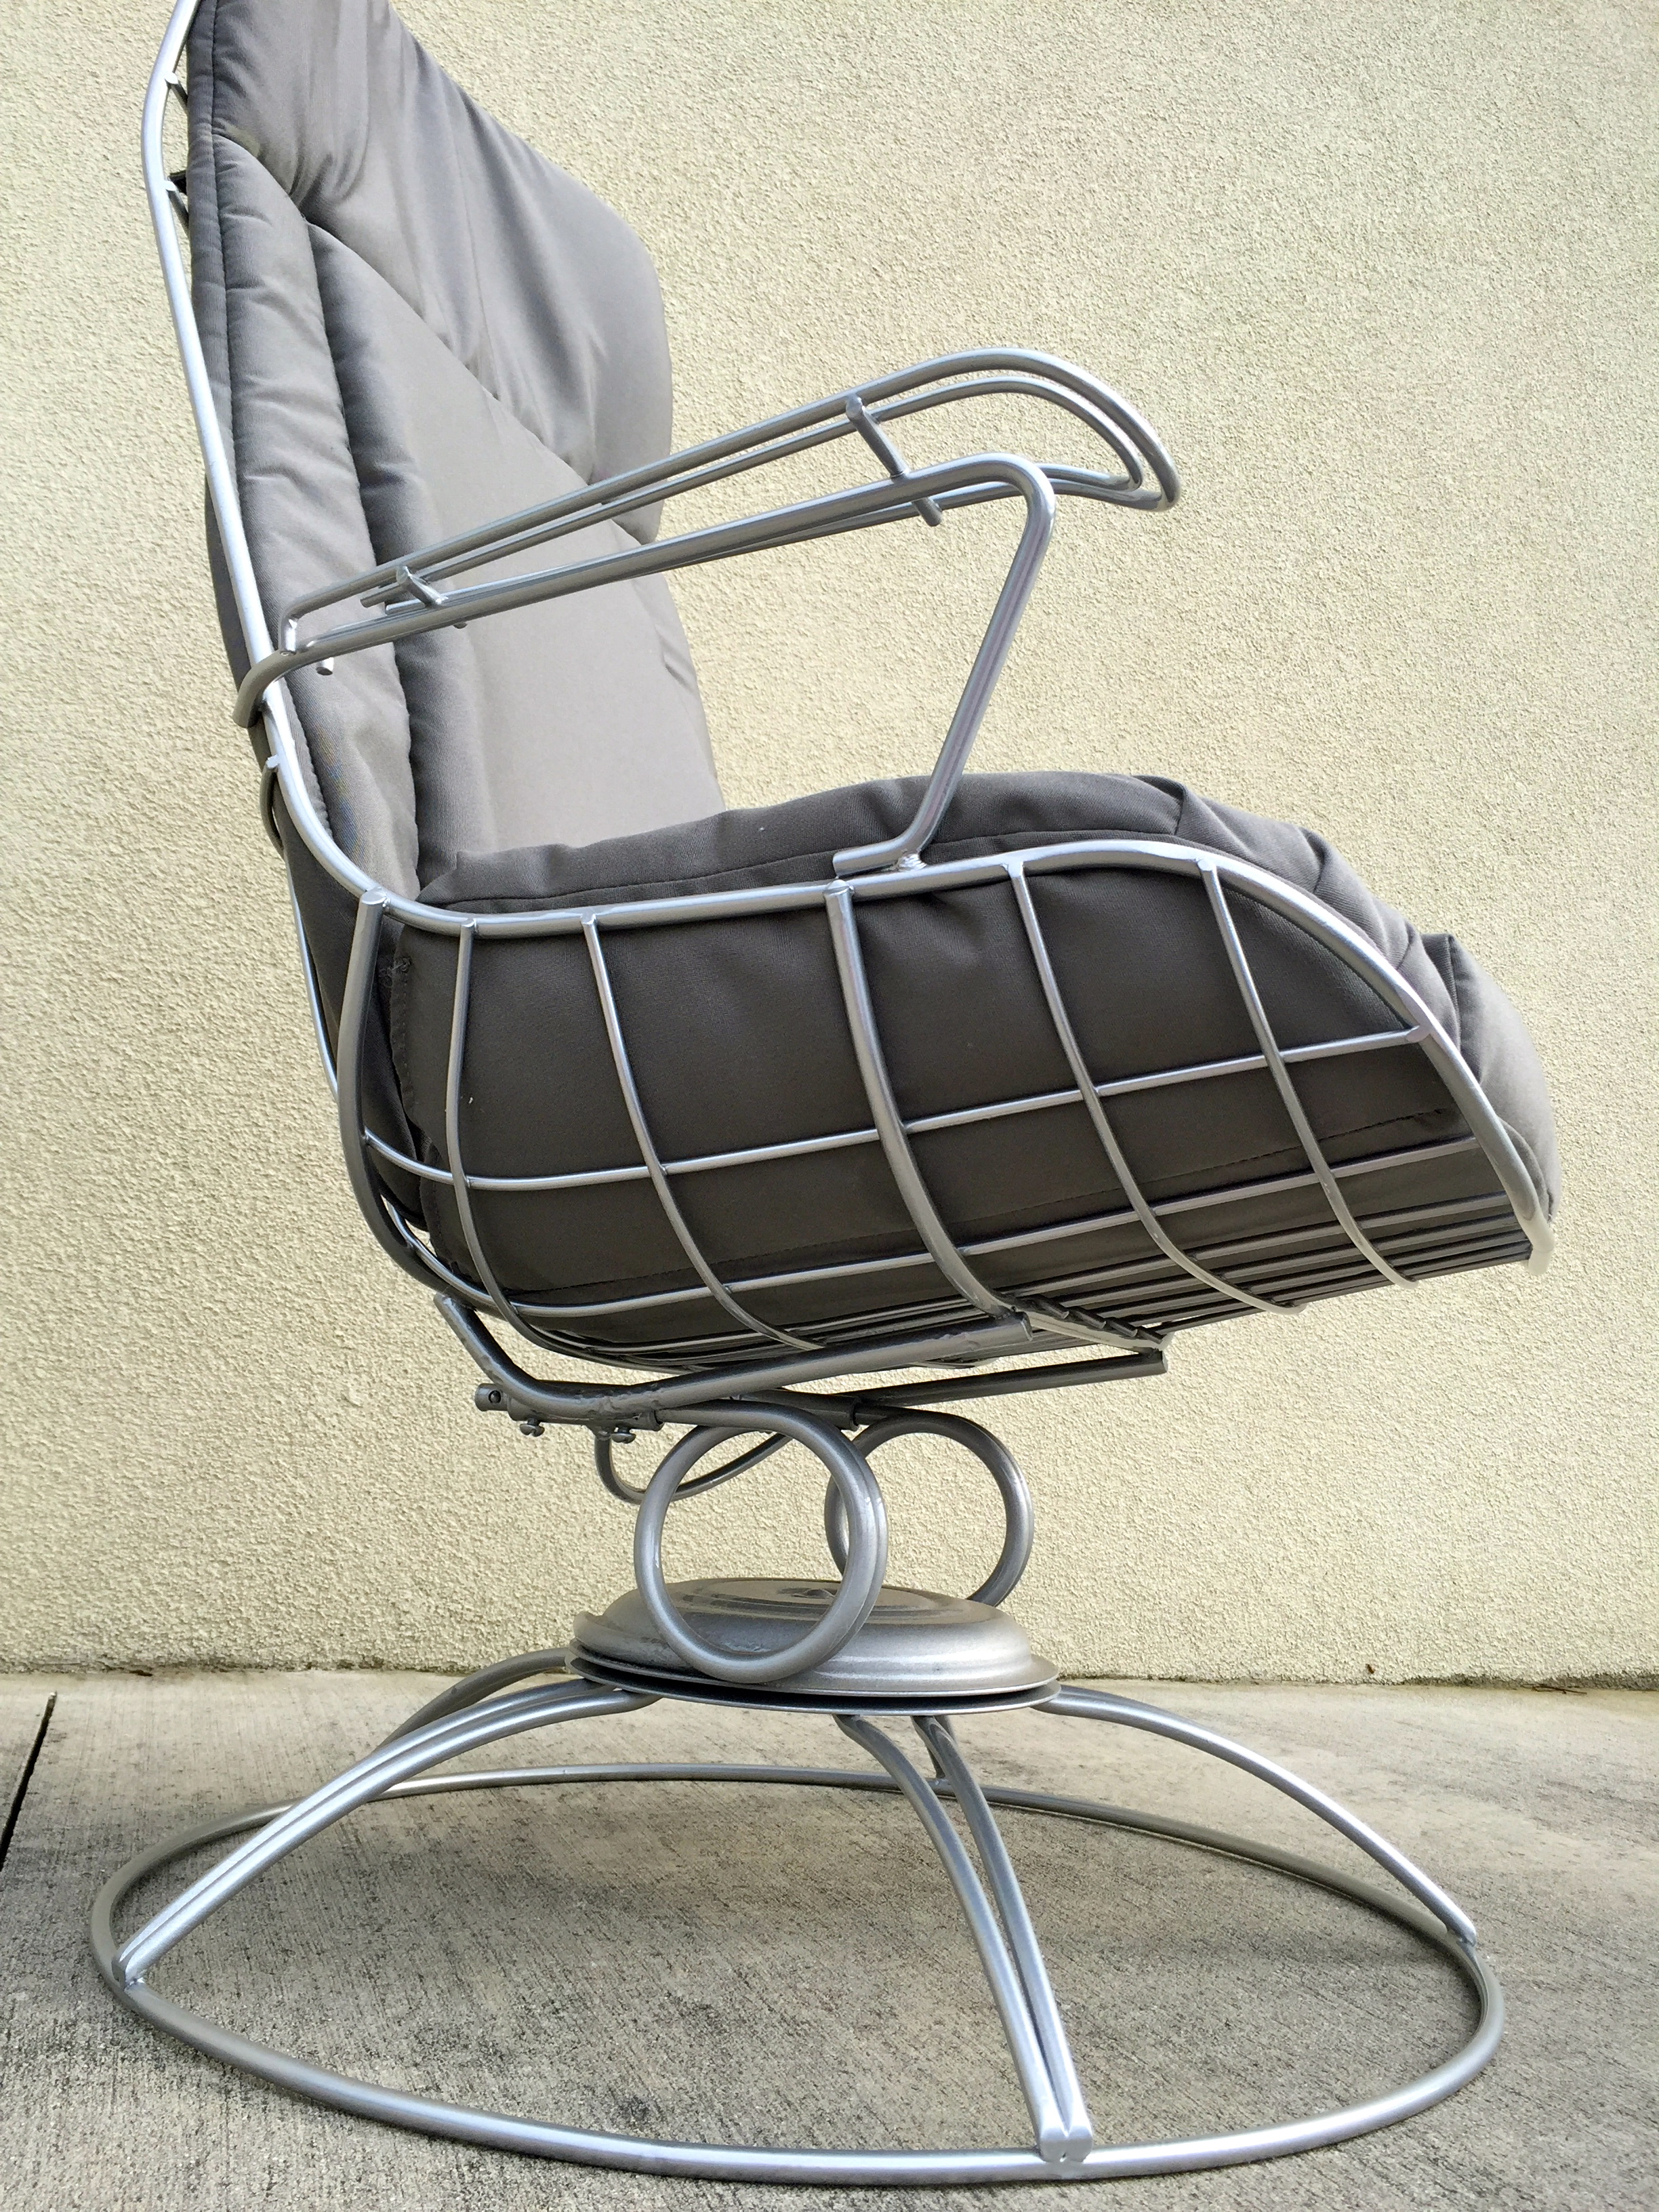 Attractive Restored Mid Century Wrought Iron Lounge Chair   Image 10 Of 11